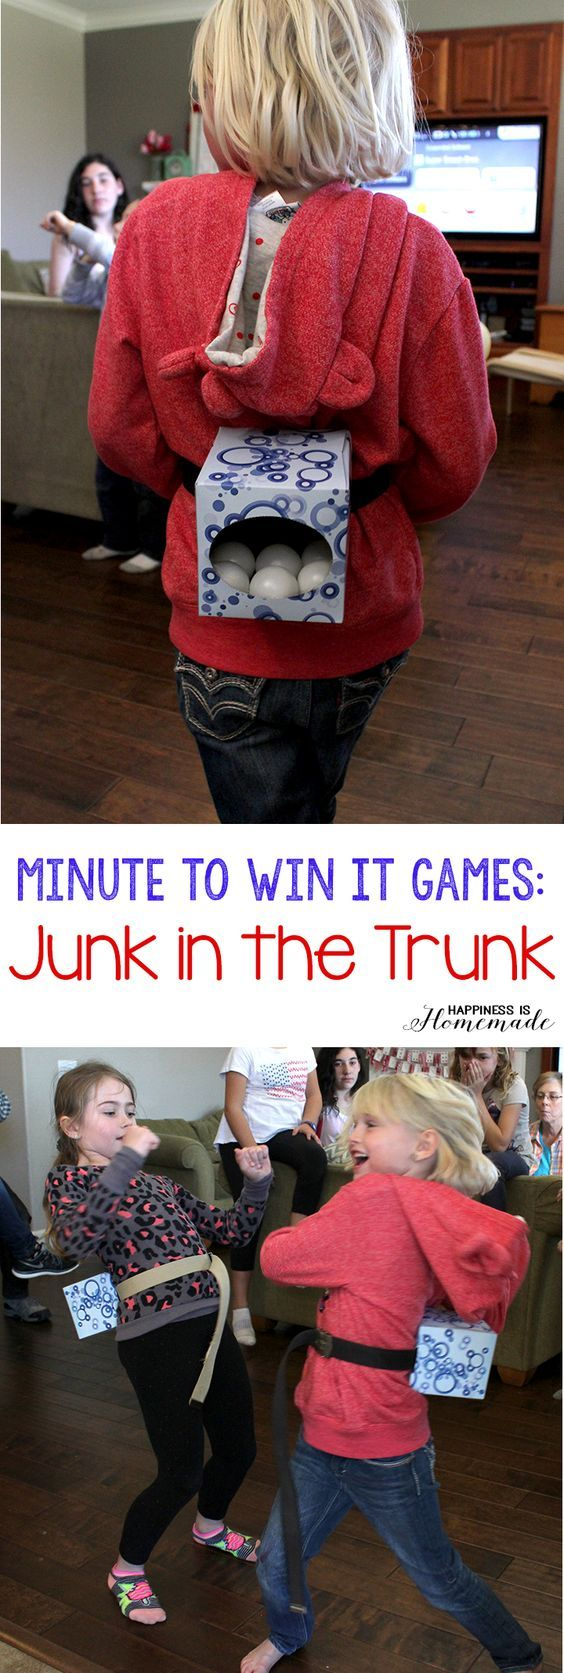 Minute to Win It Games Junk in the Trunk Birthday